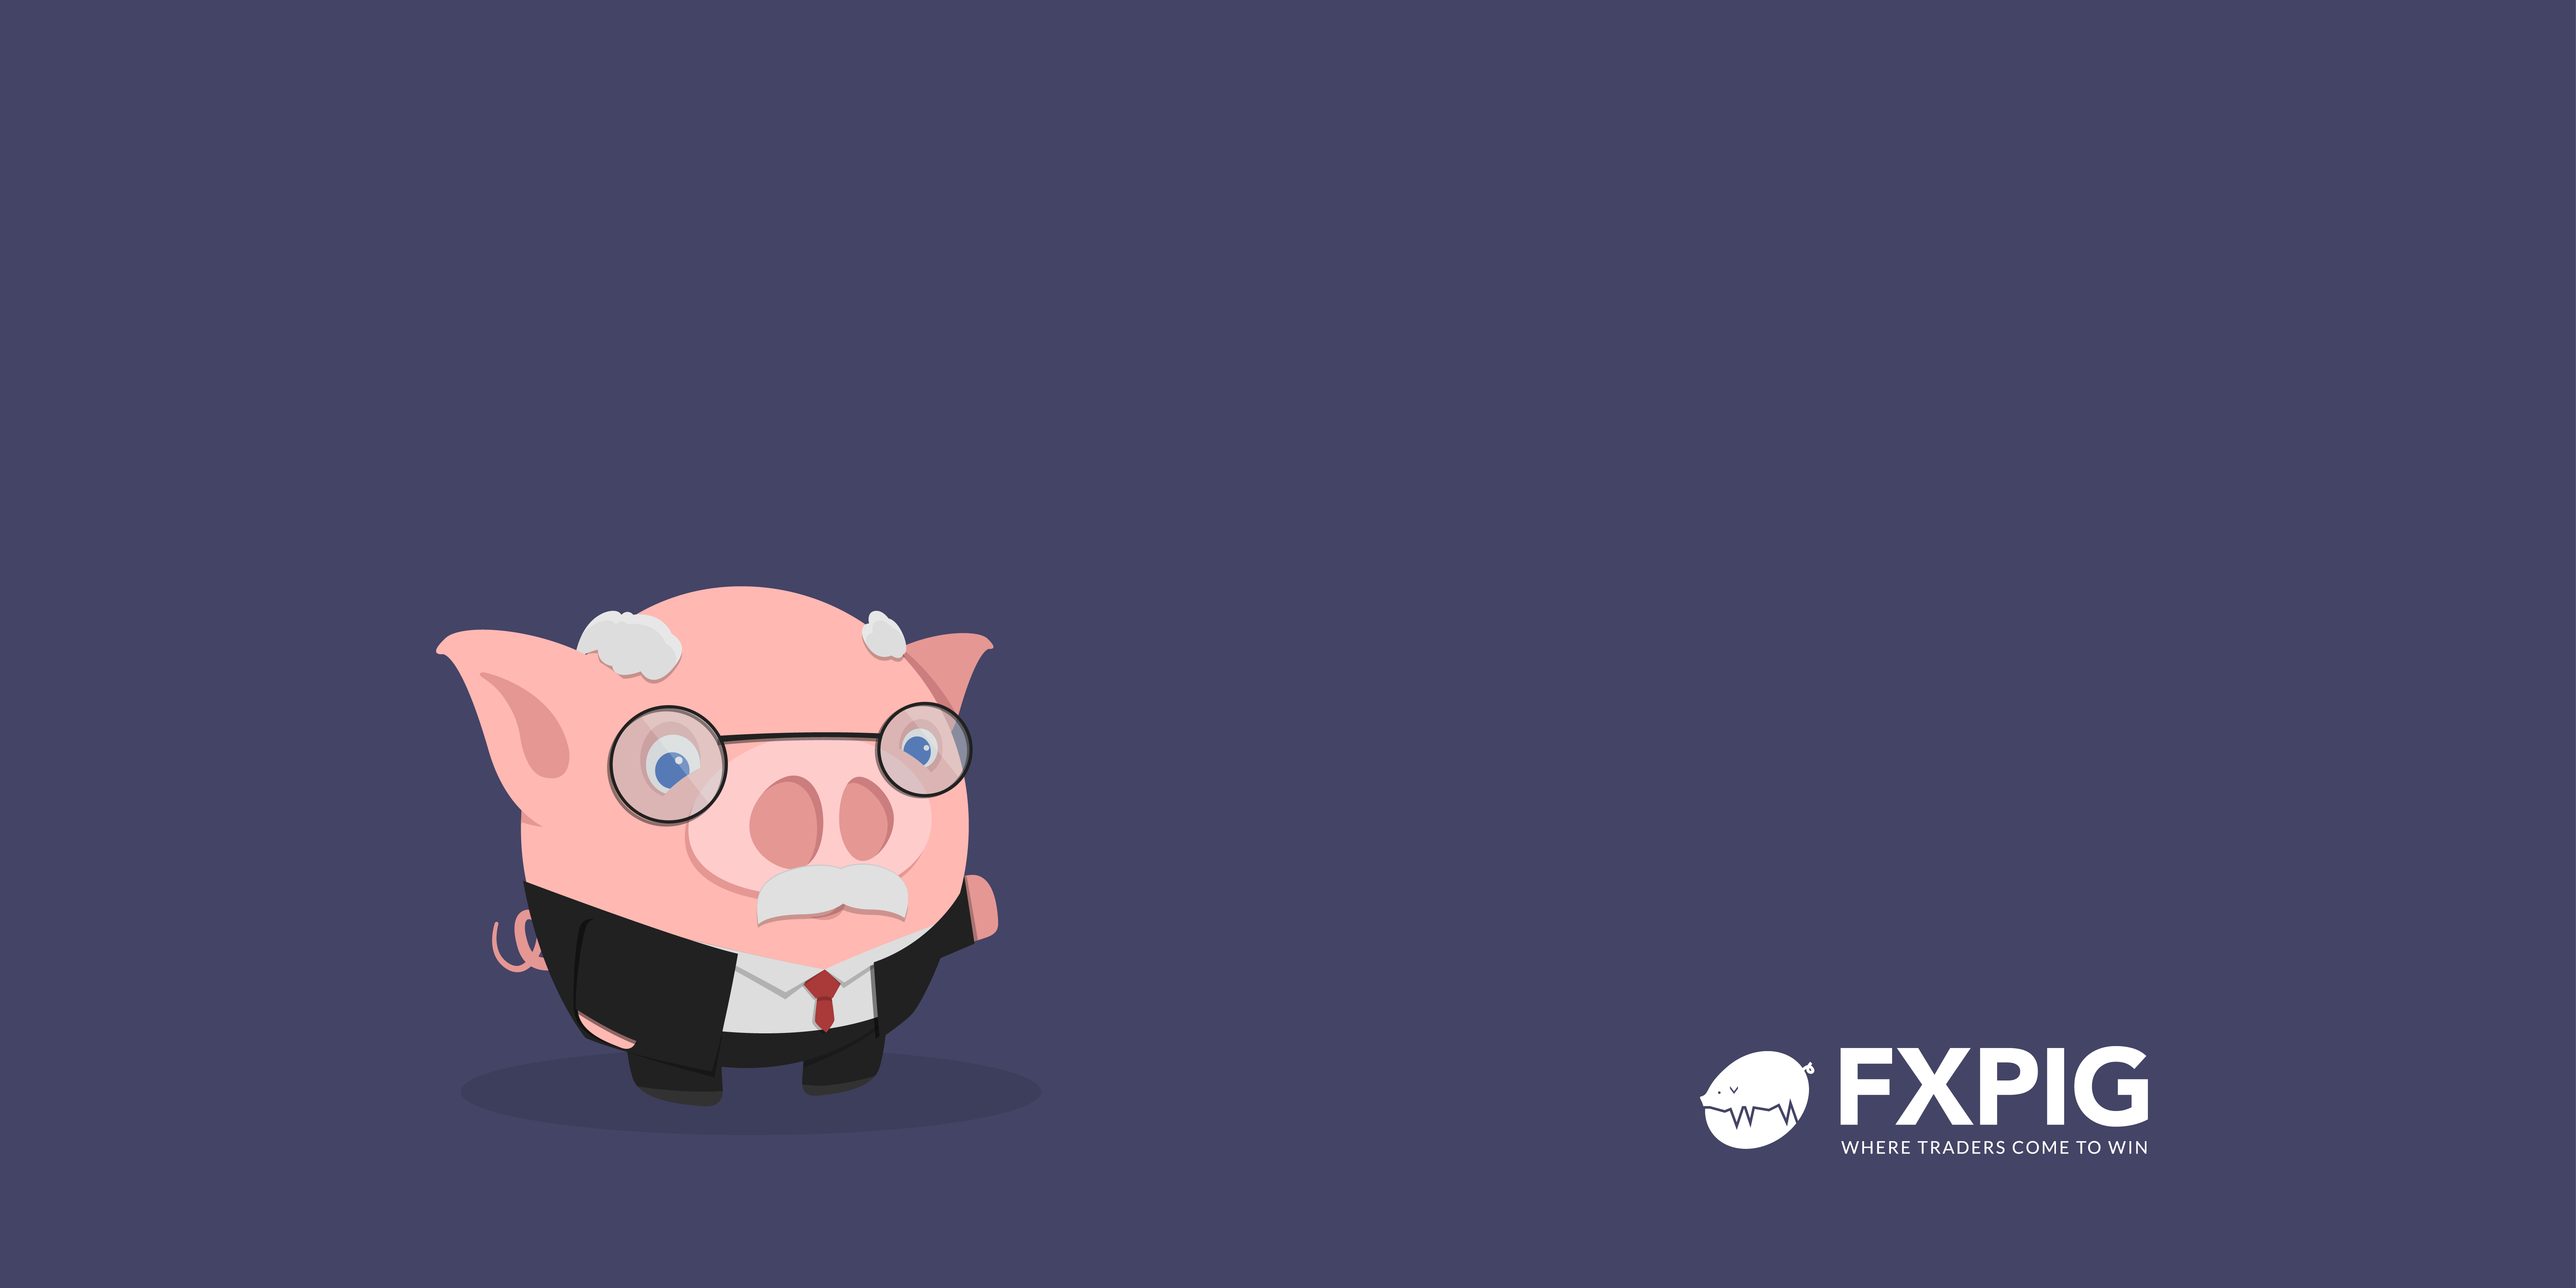 FOREX_trading-quote-pig-insider2507_FXPIG